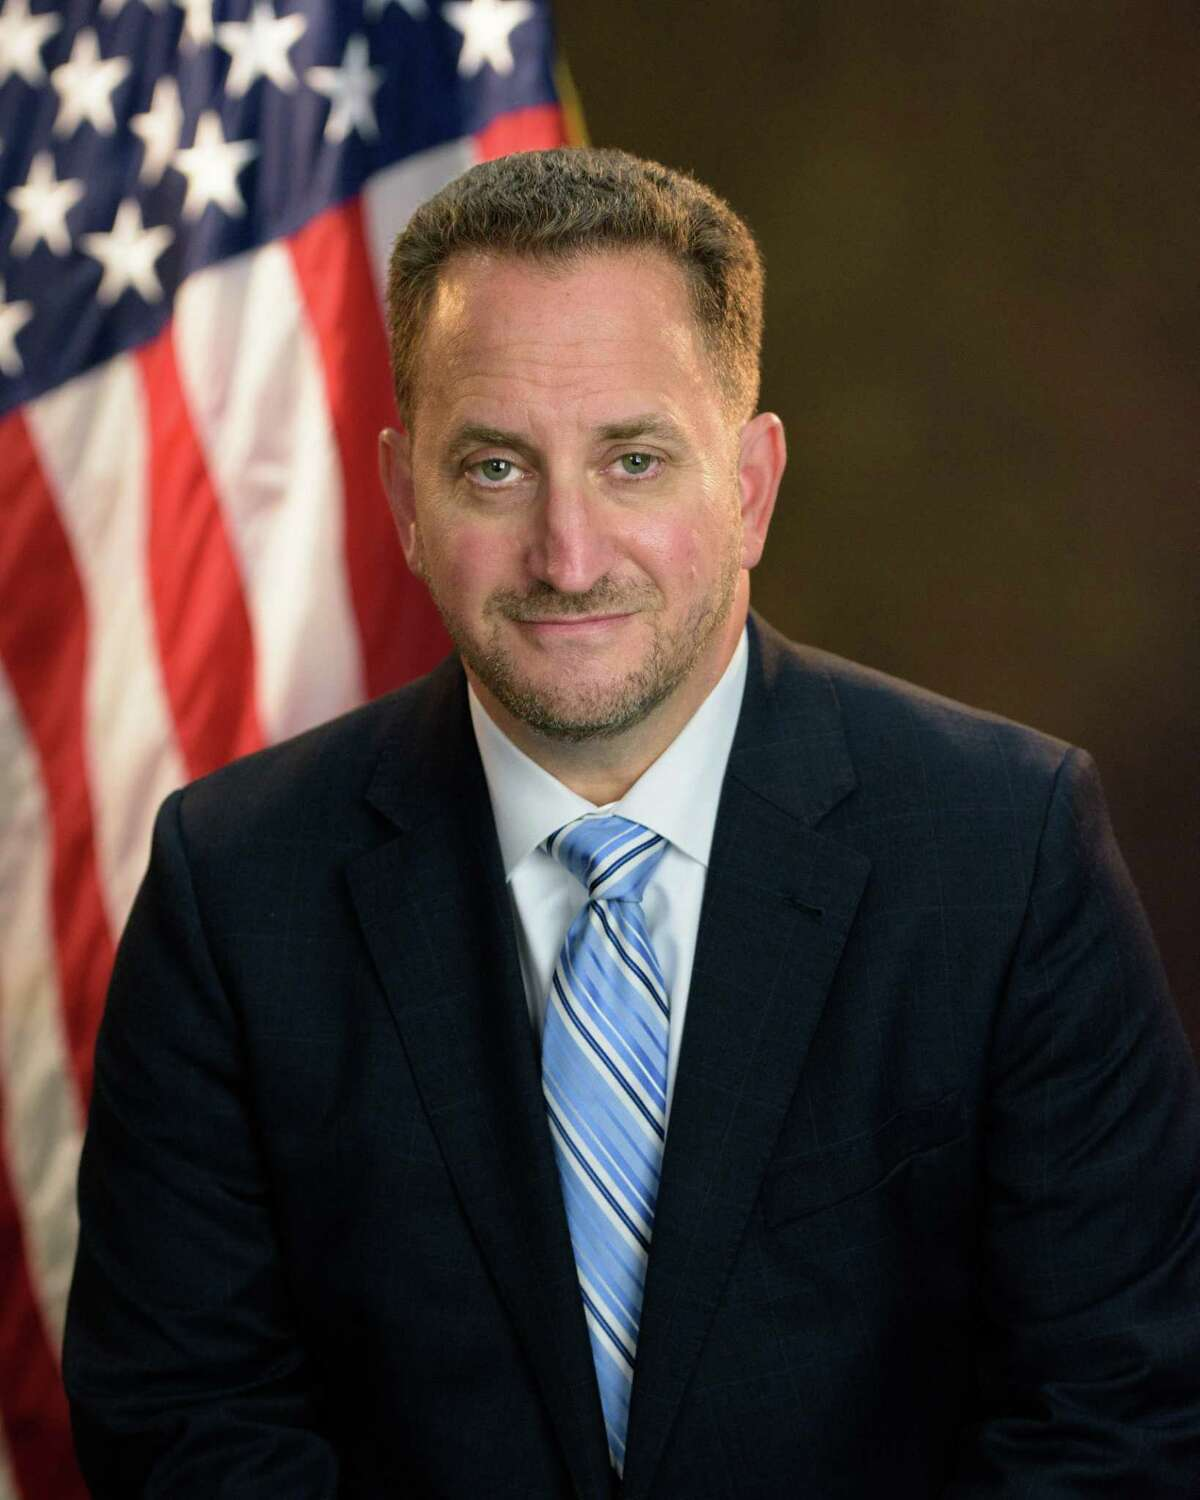 Gregg N. Sofer was officially sworn in as the new U.S. Attorney for the Western District of Texas on Tuesday, Oct. 13, 2020.